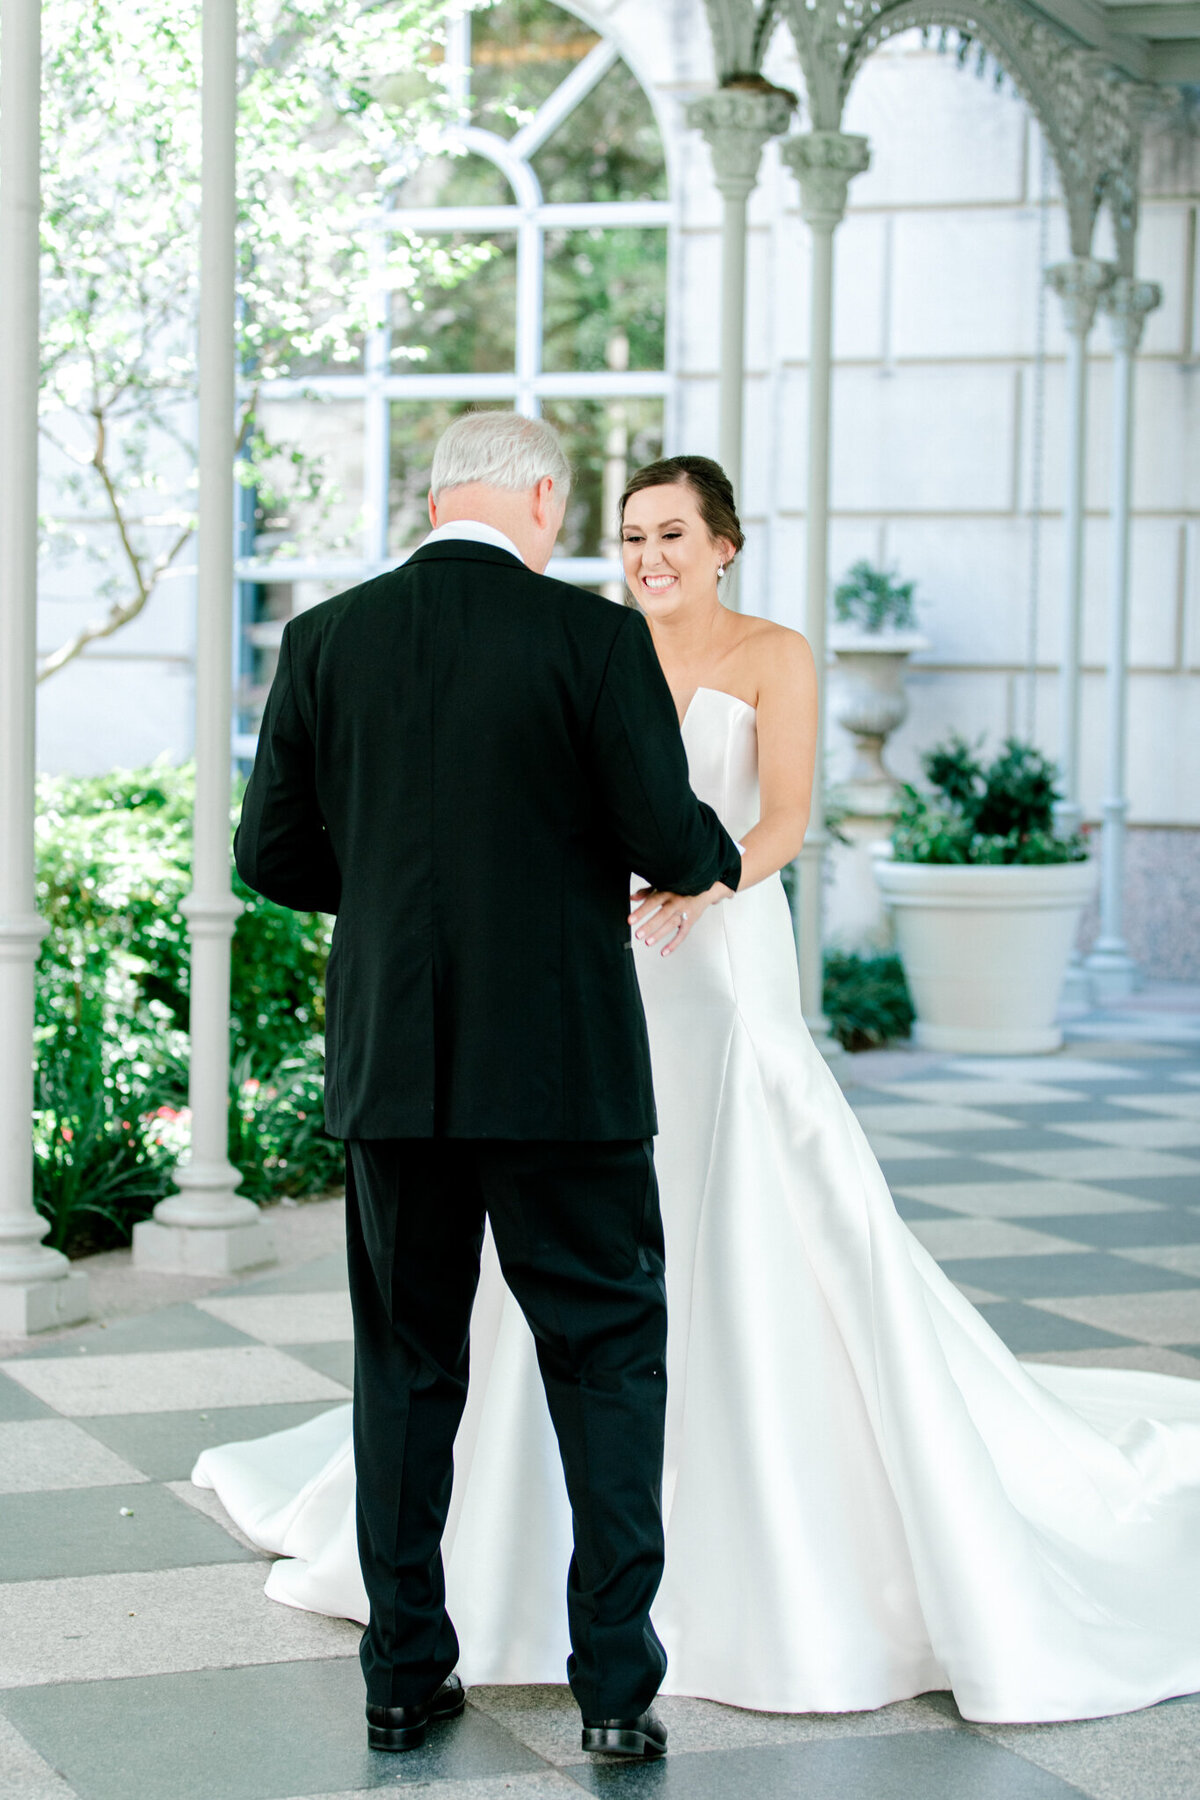 Wedding at the Crescent Court Hotel and Highland Park United Methodist Church in Dallas | Sami Kathryn Photography | DFW Wedding Photographer-39